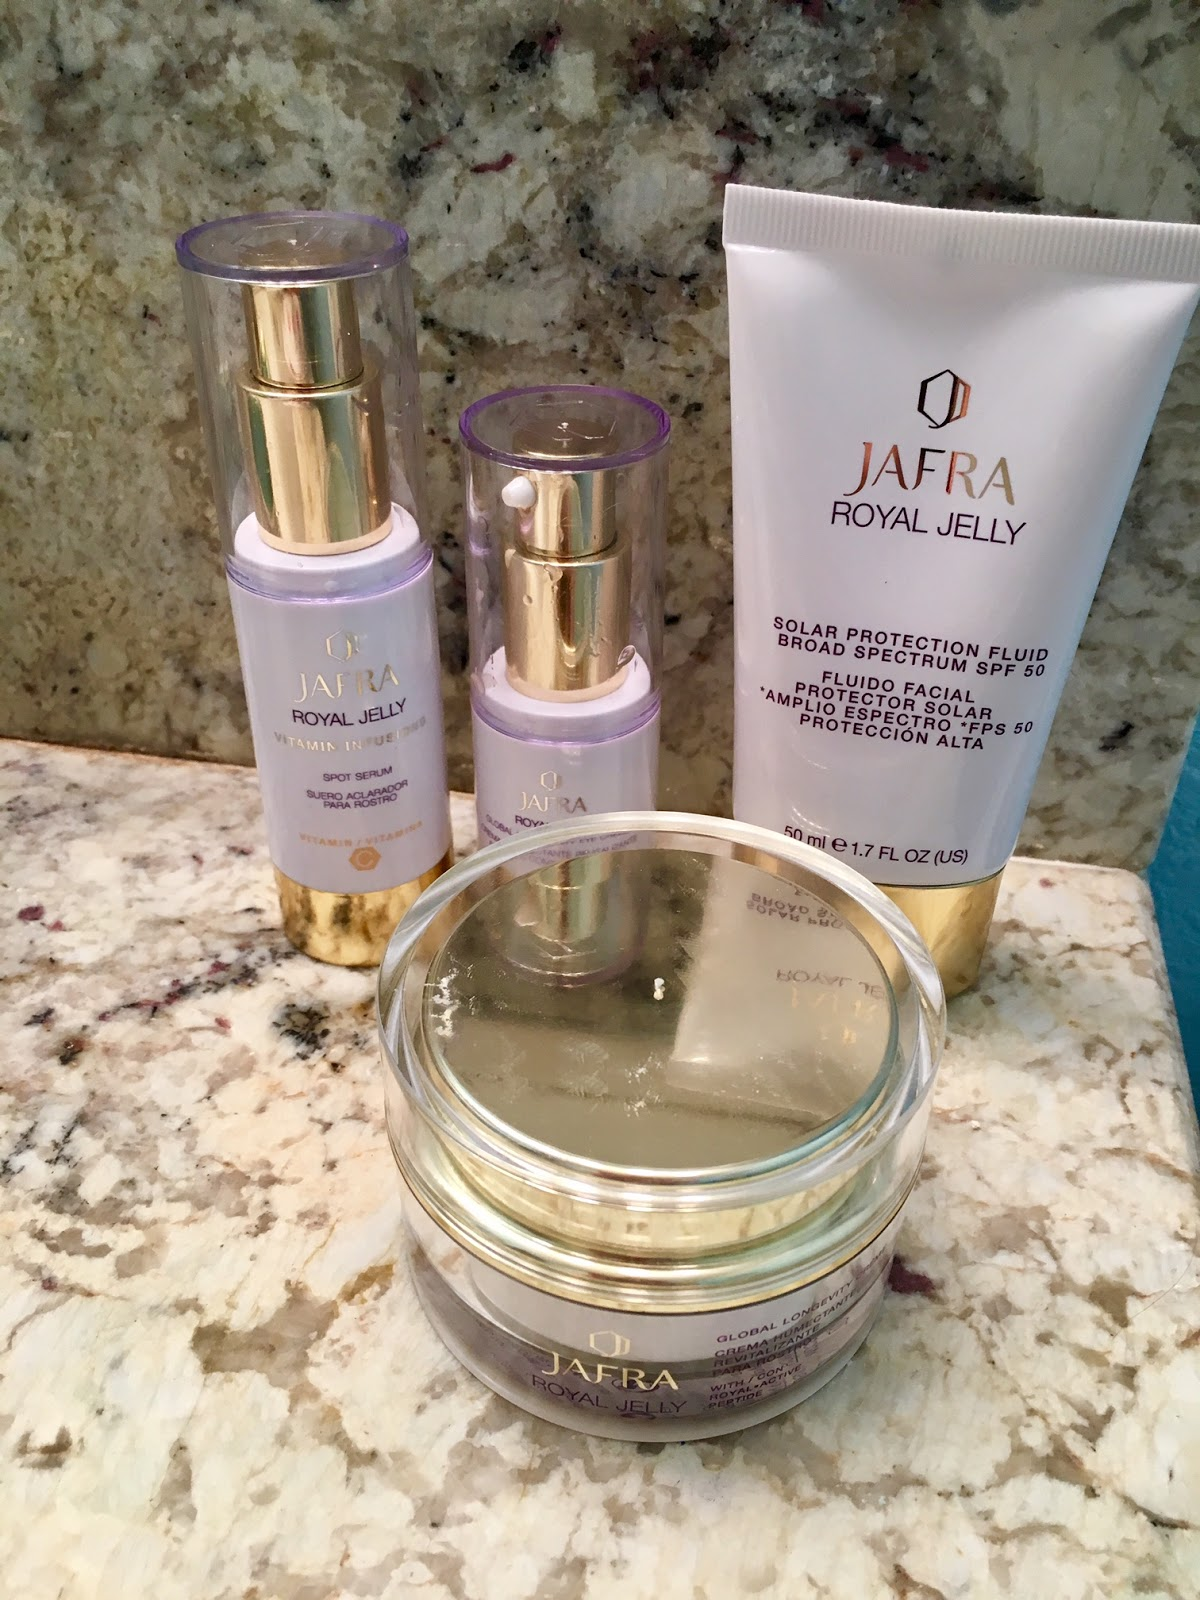 Jenns Savings Freebies Deals Five Free Full Size Skincare Jafra Royal Jelly I Had Never Heard Of The Brand Before Crowdtap Introduced Them To Me So Wasnt Too Sure What Expect When Started Interacting With This